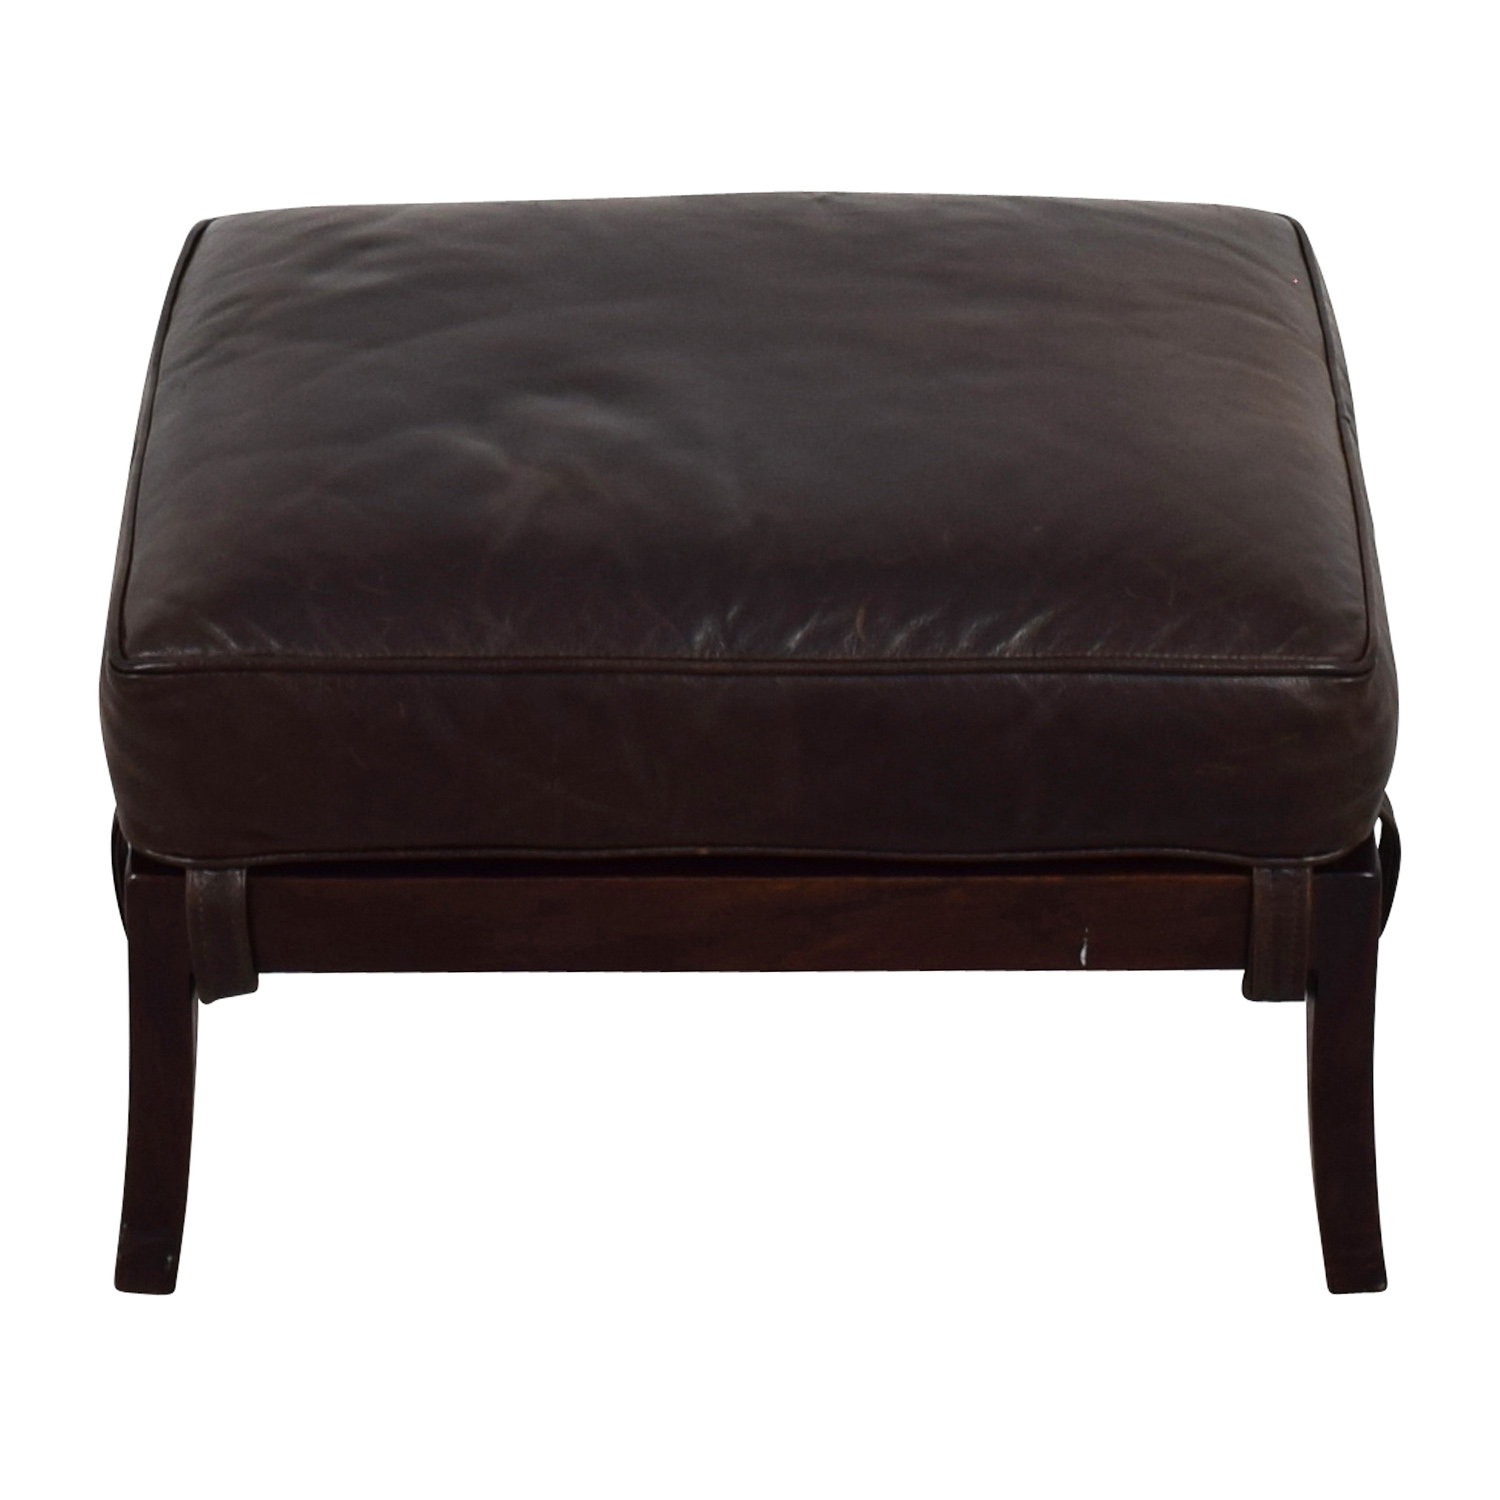 shop Crate & Barrel Blake Carbon Grey Ottoman with Leather Cushion Crate and Barrel Ottomans